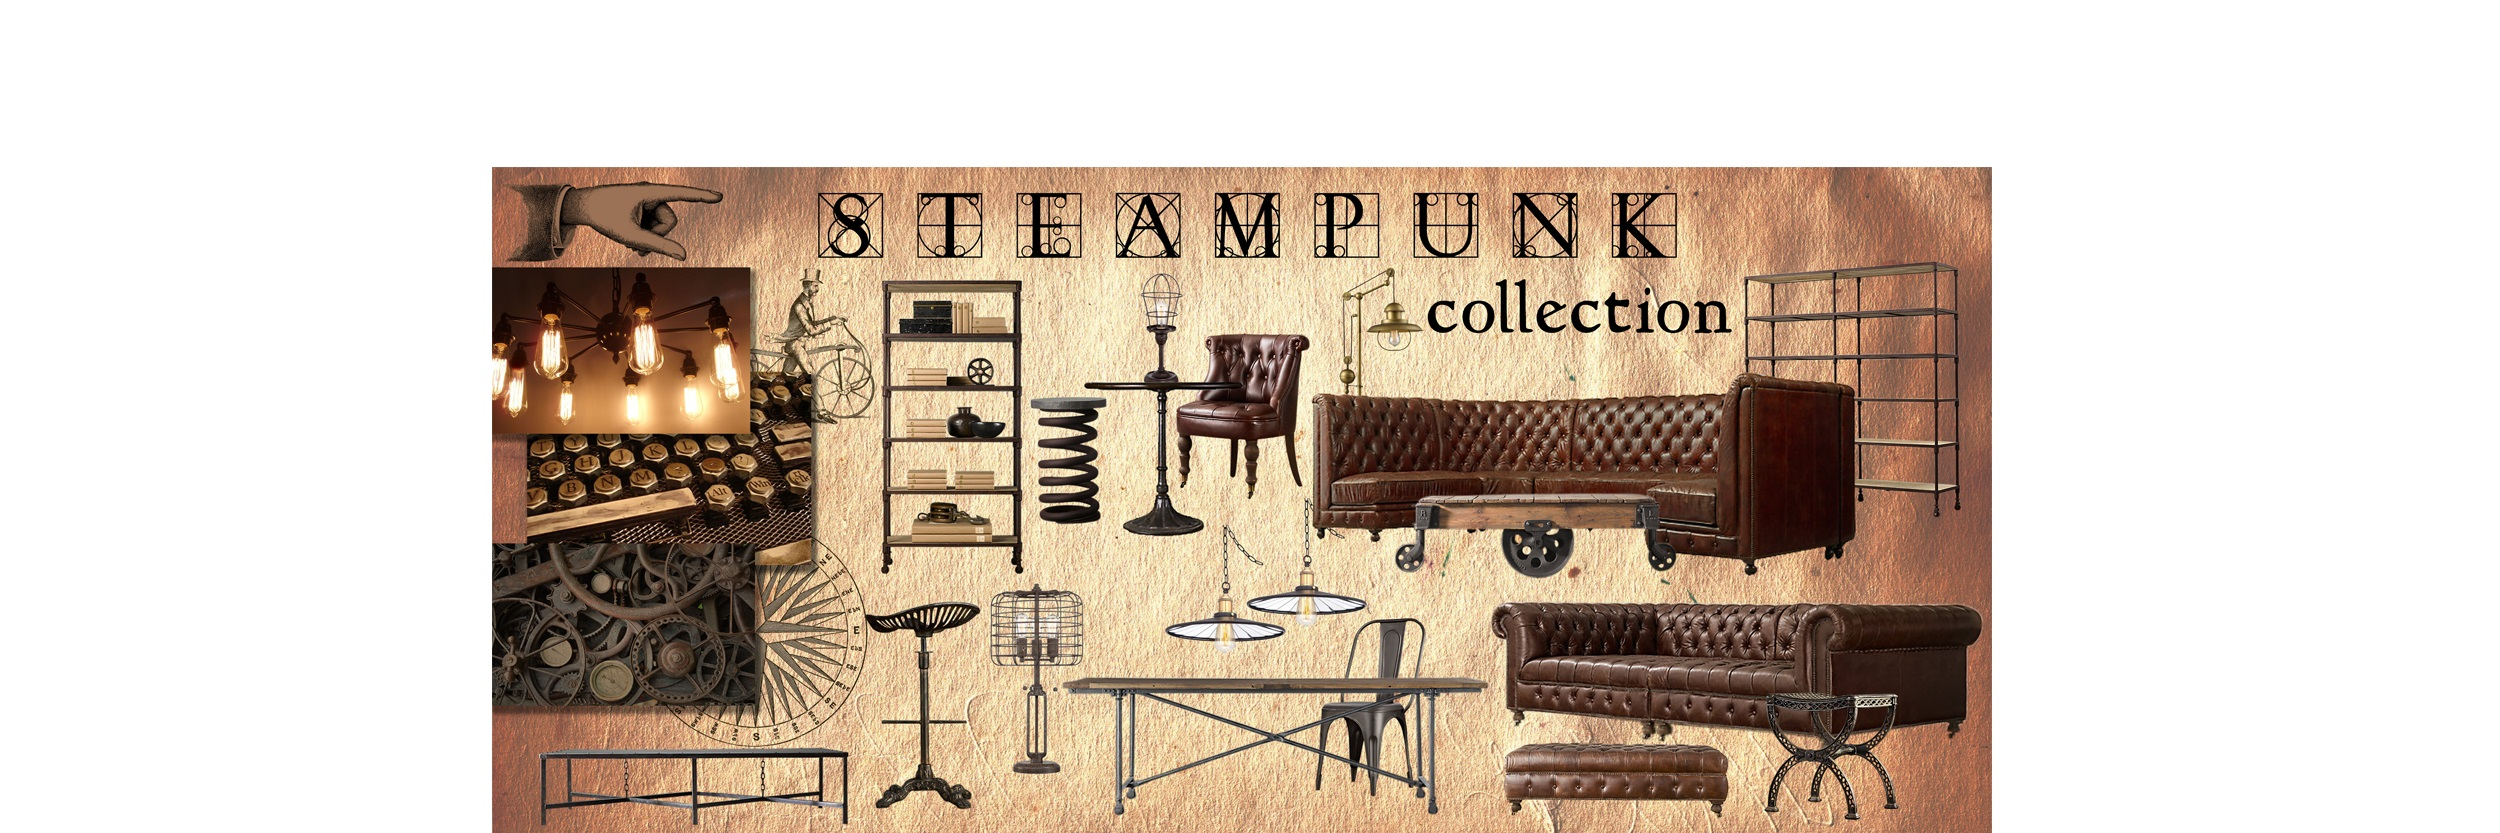 STEAMPUNK-COLLECTION-WEB-BANNER-copy-copy1